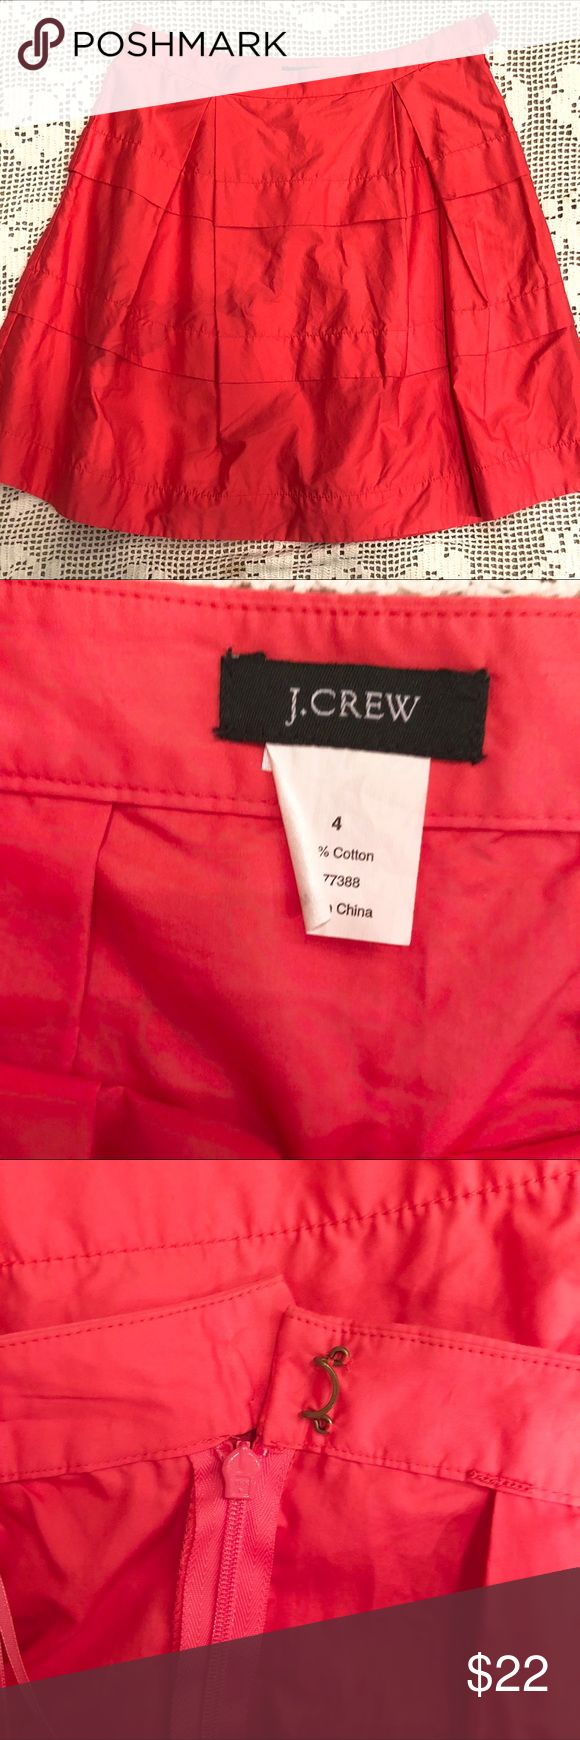 J. Crew Coral Full Pleated Skirt Sz 4 J. Crew Coral Full Pleated Mini Skirt. Missing part of hook closure, otherwise a nice Skirt! Size 4 from a smoke free pet free home J. Crew Skirts Mini